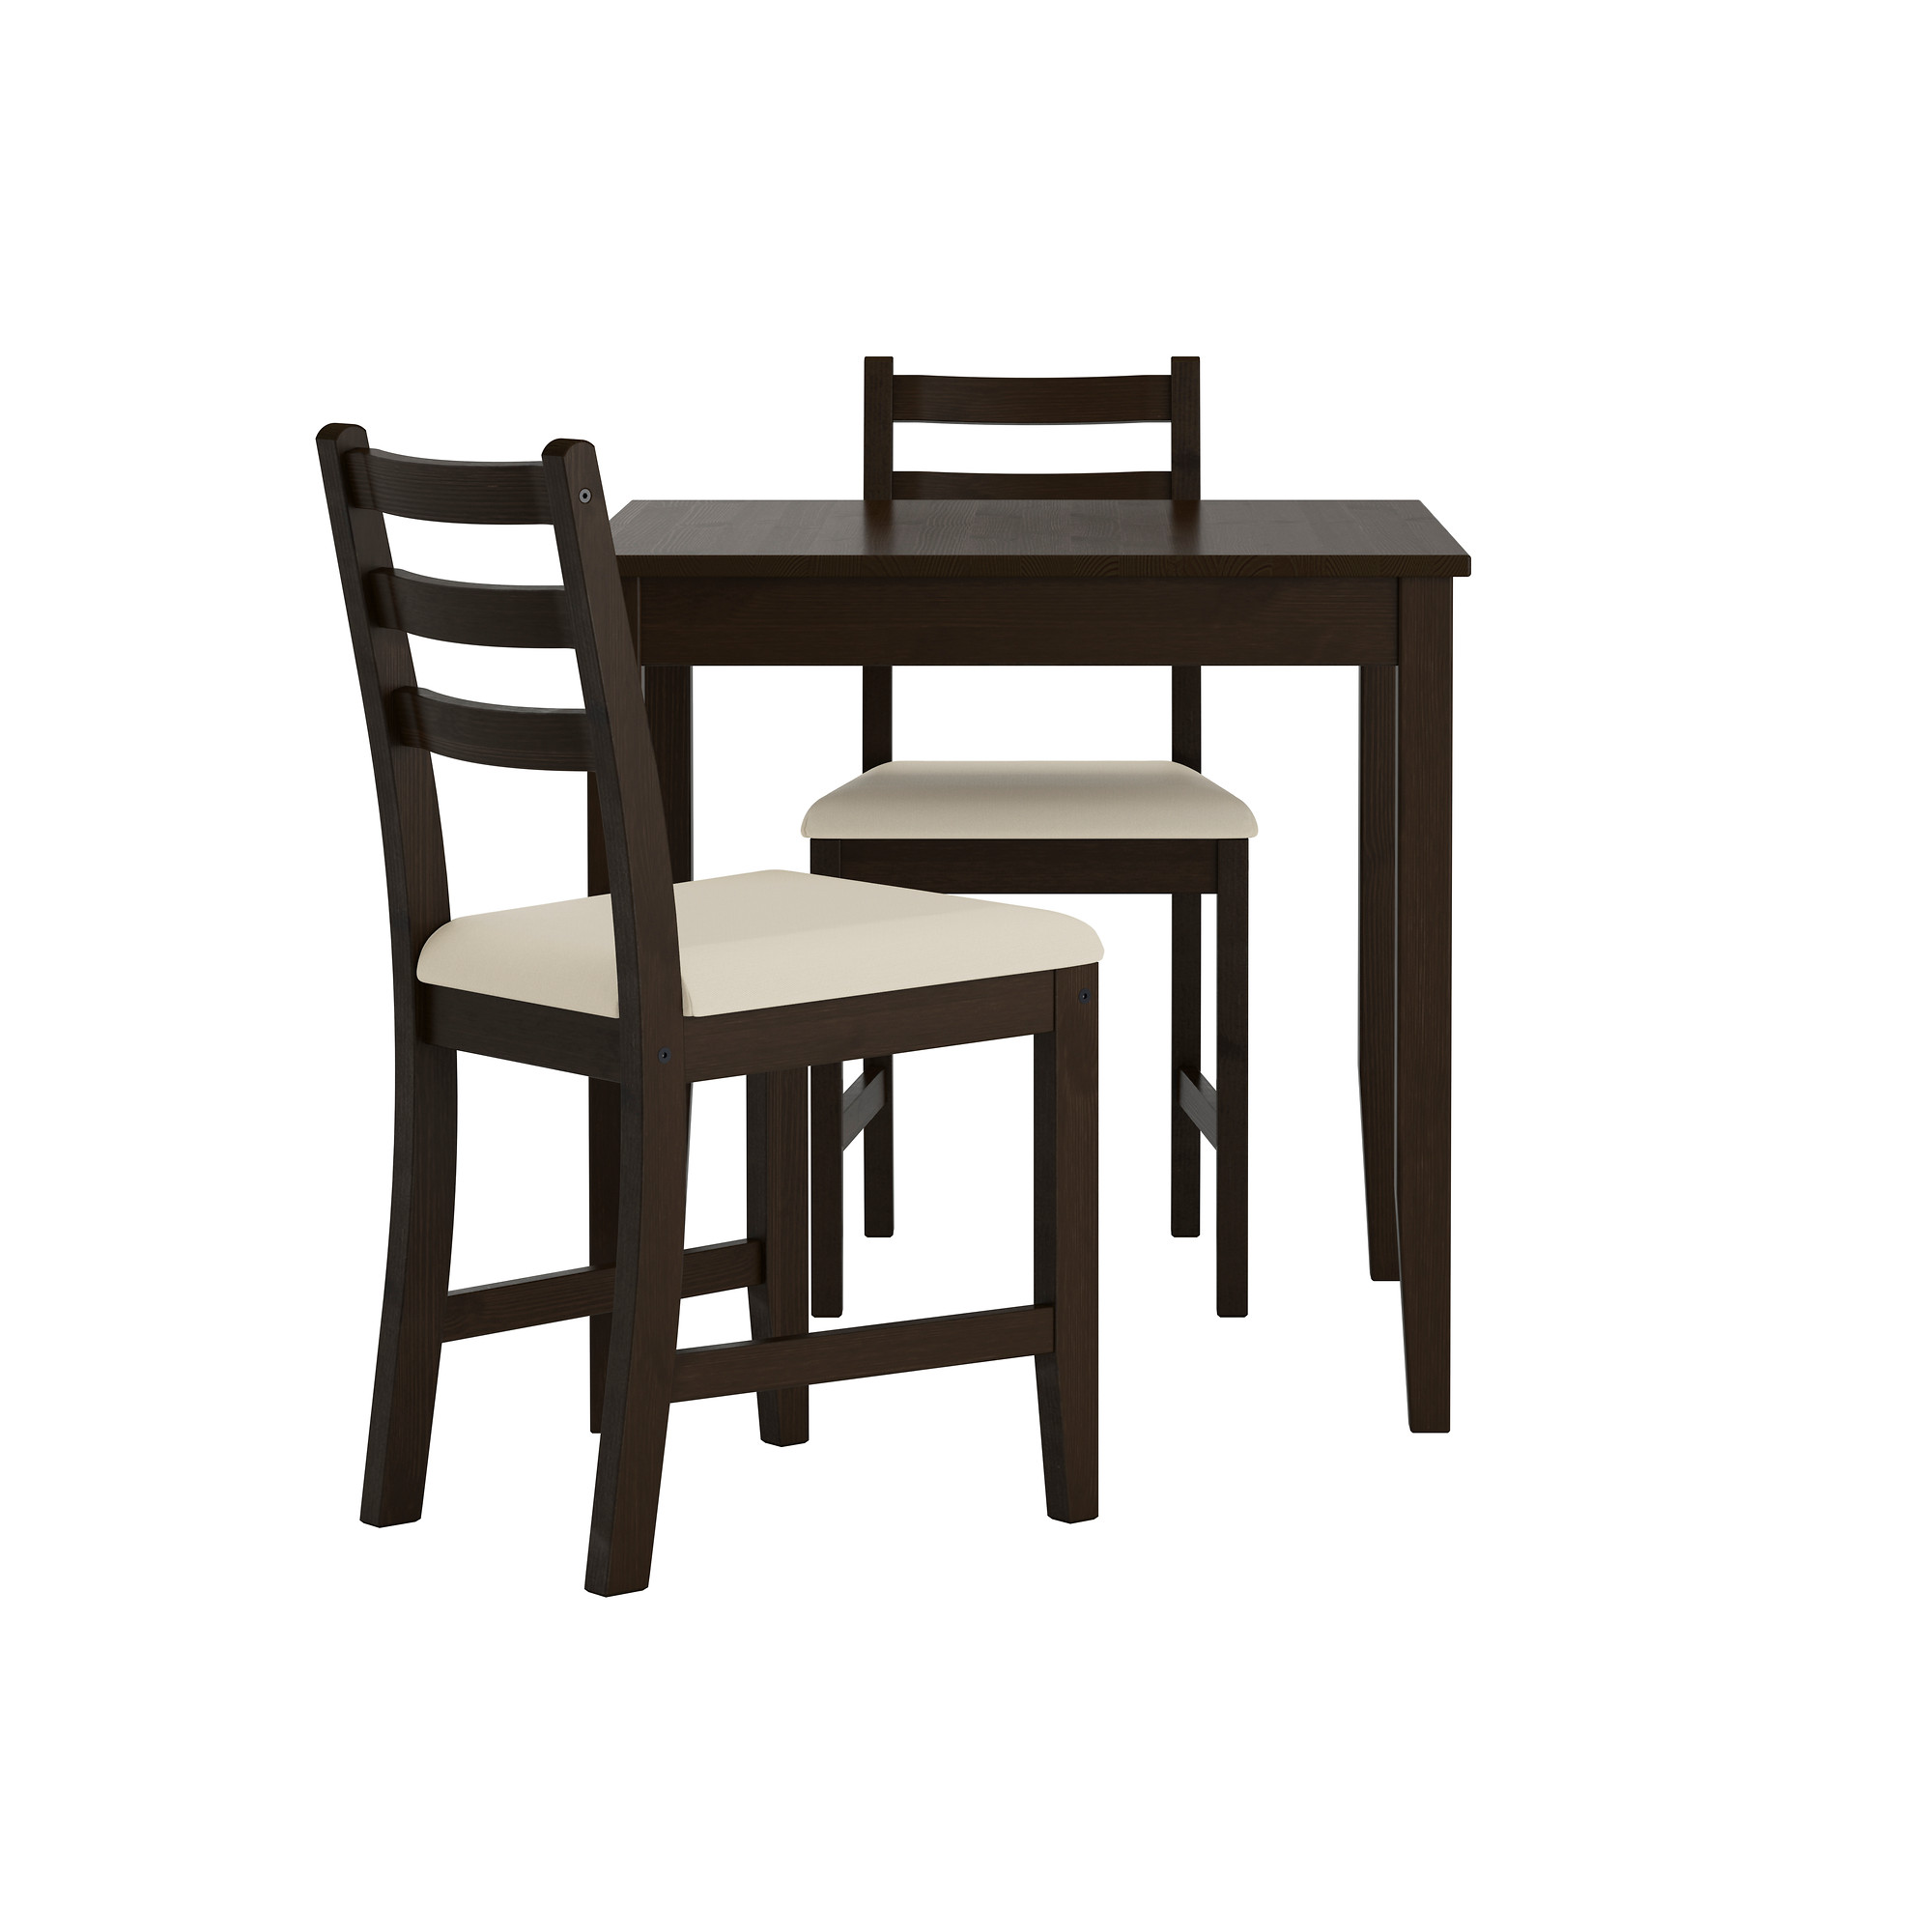 Lerhamn Table And 2 Chairs Black Brown Vittaryd Beige Ikea Indonesia